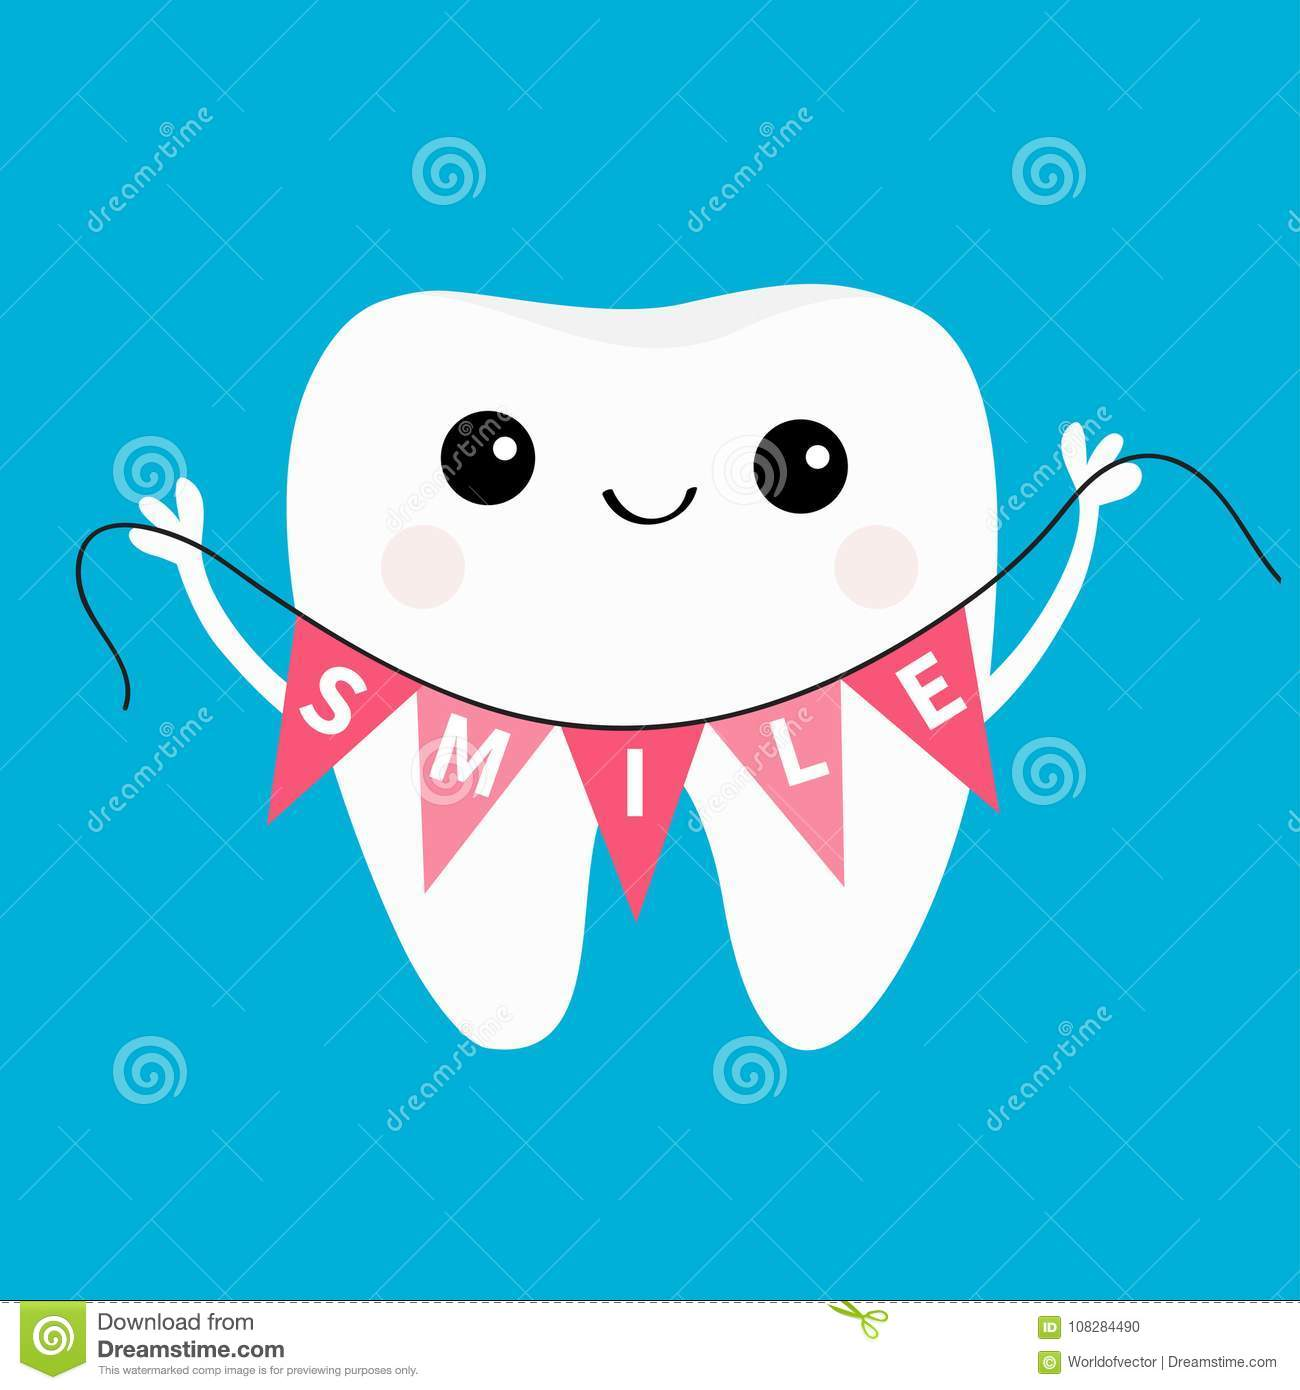 Healthy tooth icon holding bunting flag Smile. Oral dental hygiene. Children teeth care. Cute cartoon character. Smiling head face